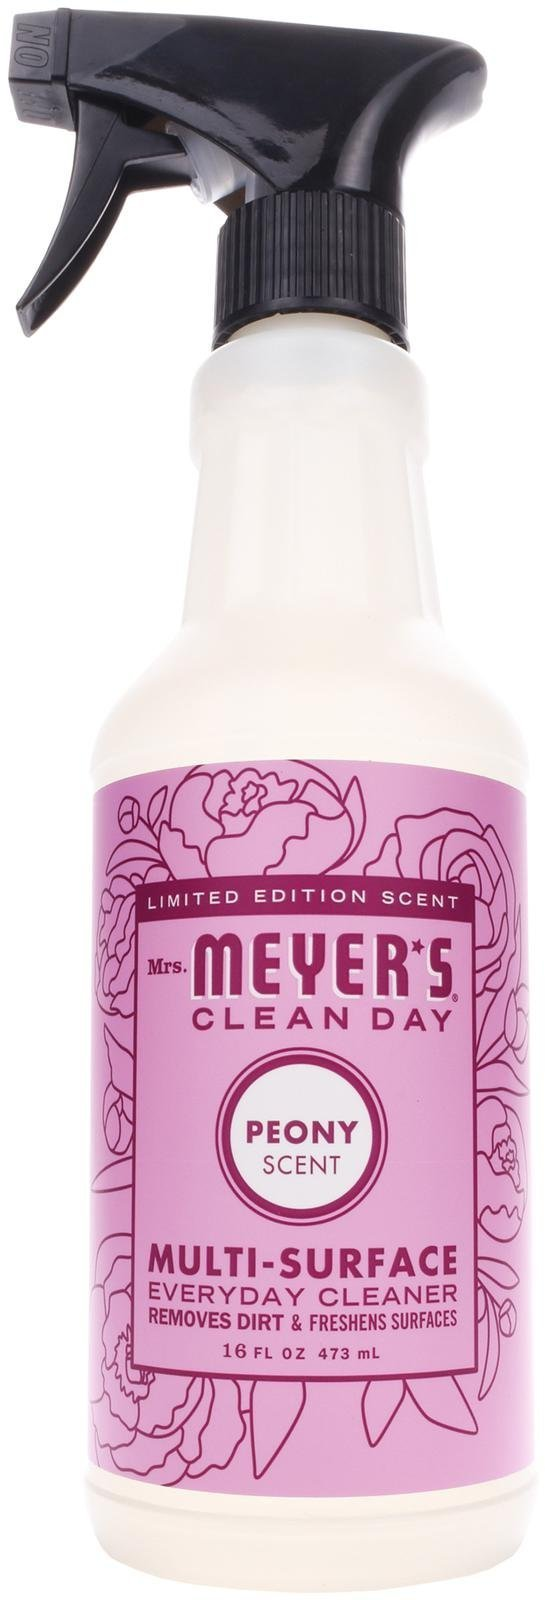 Mrs. Meyer's Clean Day Multi-surface Everyday Cleaner, Peony, 16.0 Fluid Ounce